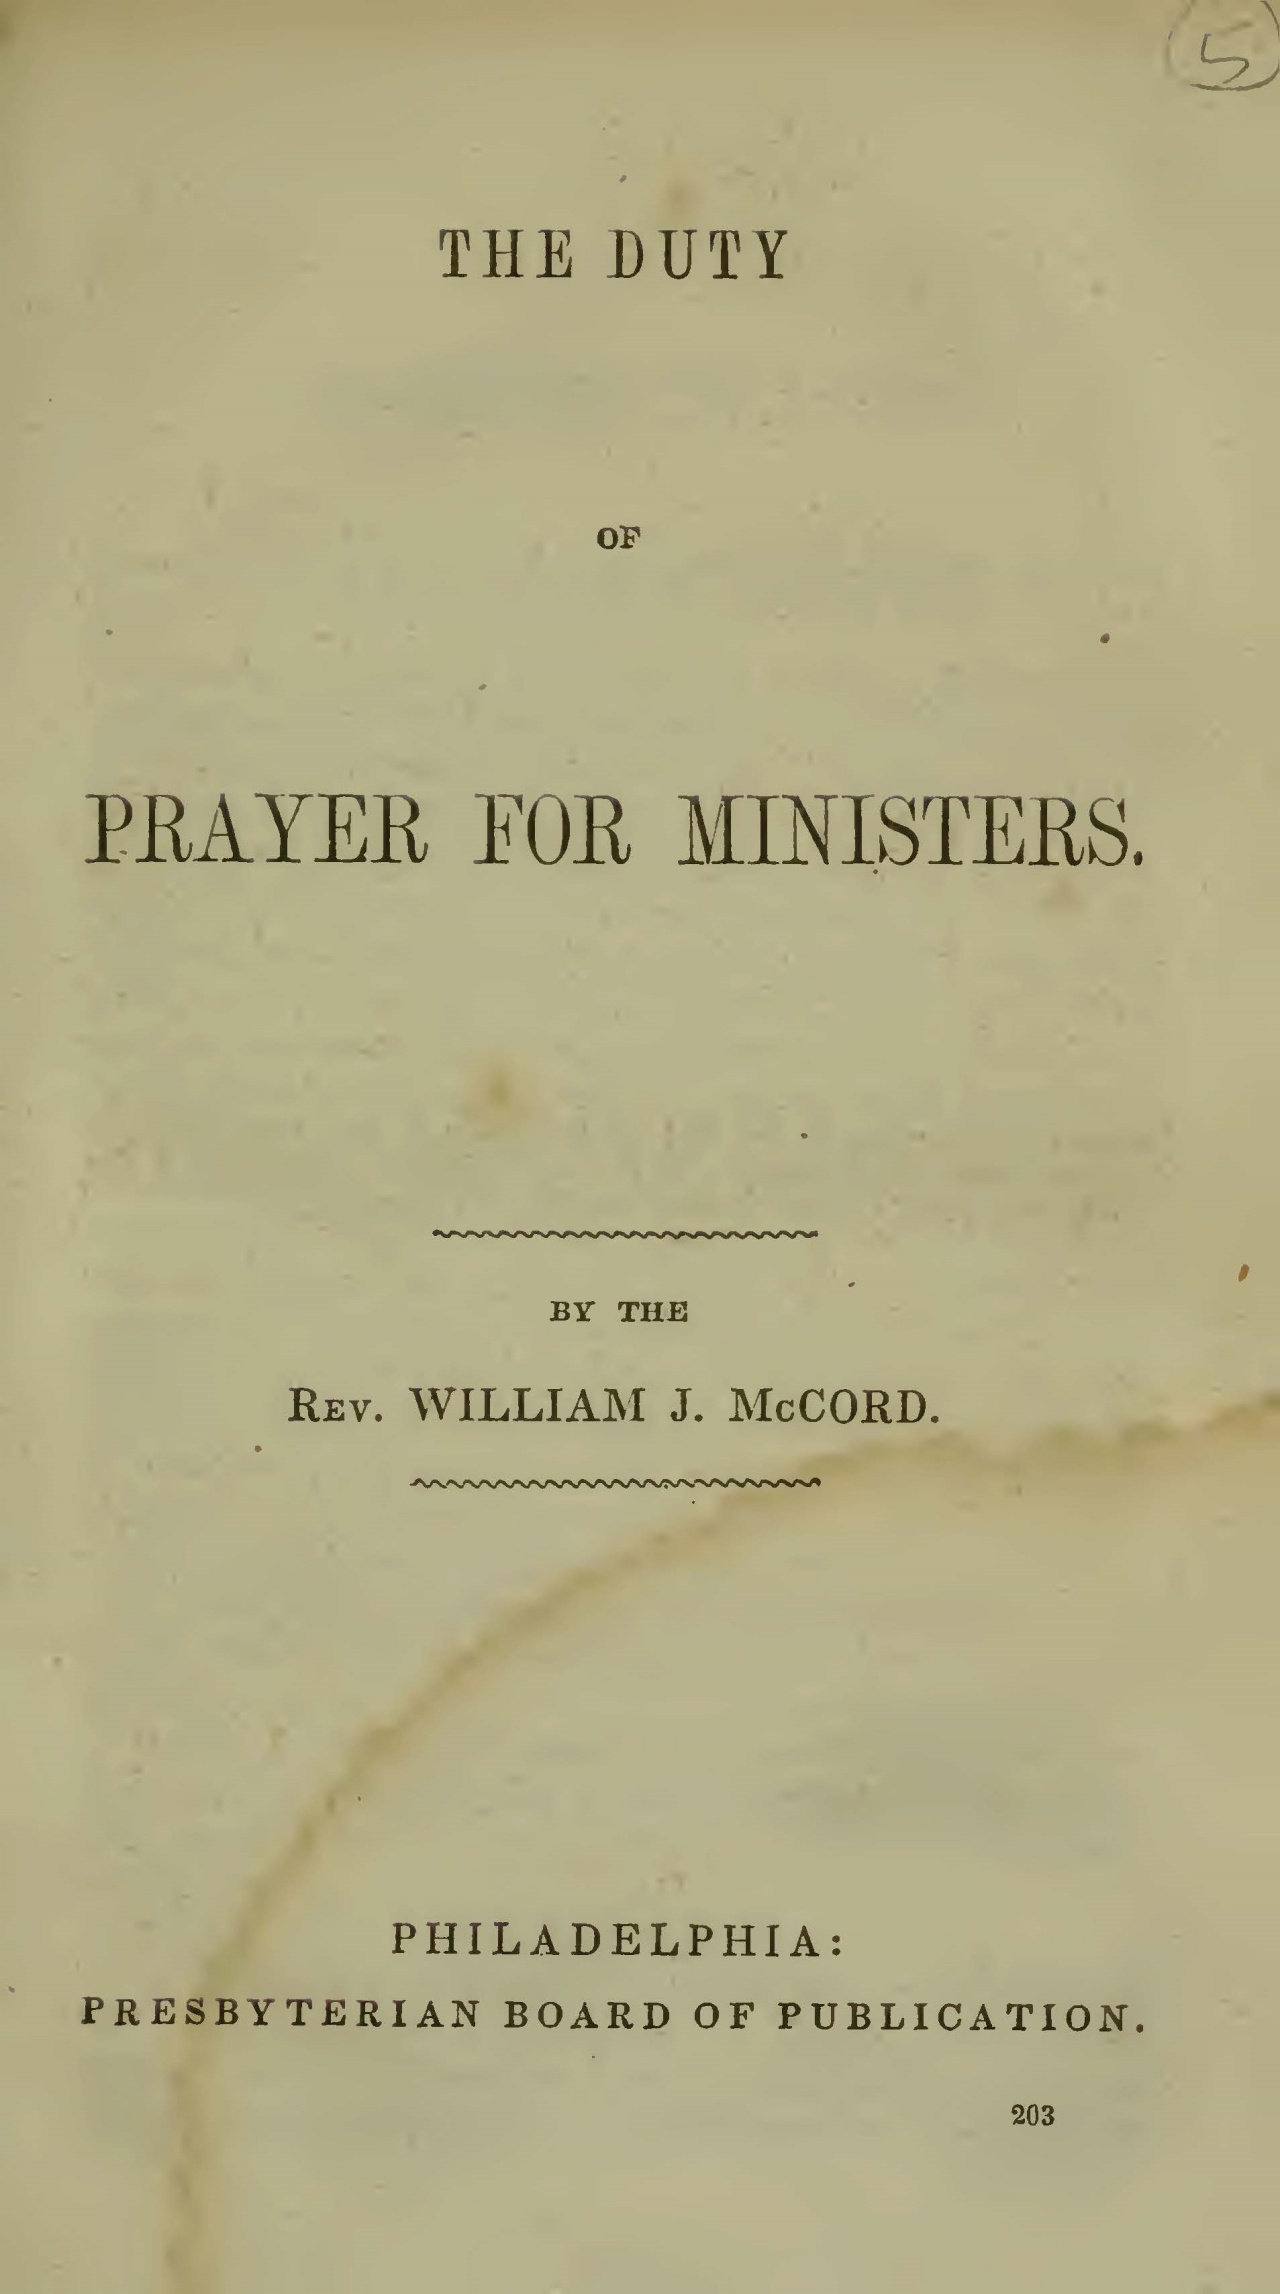 McCord, William J., The Duty of Prayer For Ministers Title Page.jpg